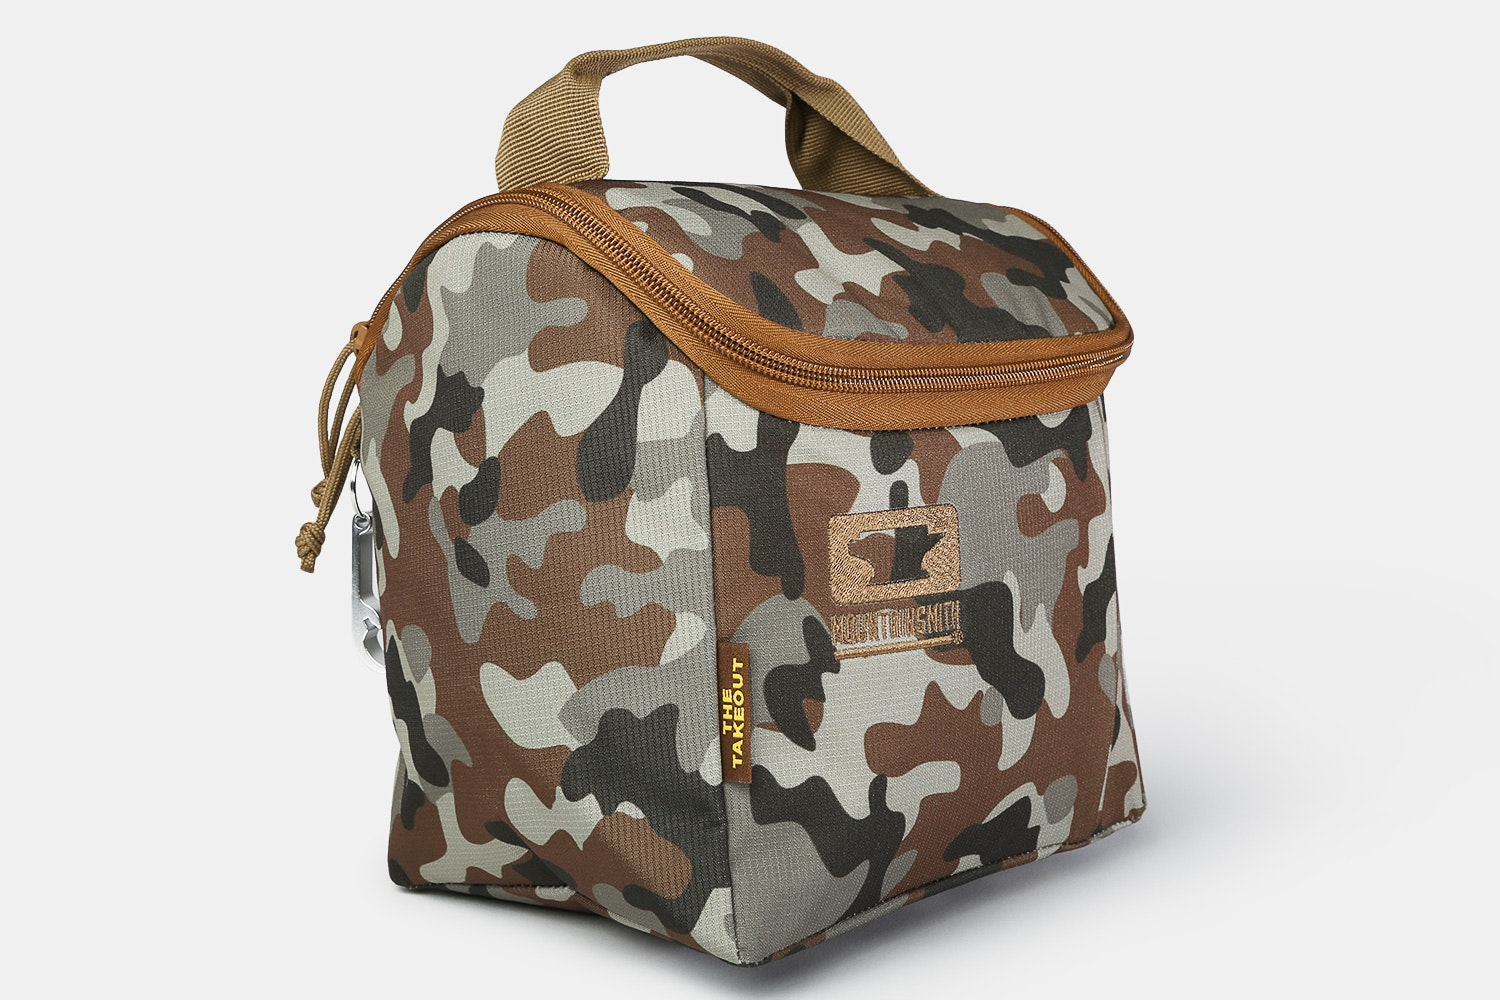 Mountainsmith Takeout or Sixer Soft Cooler